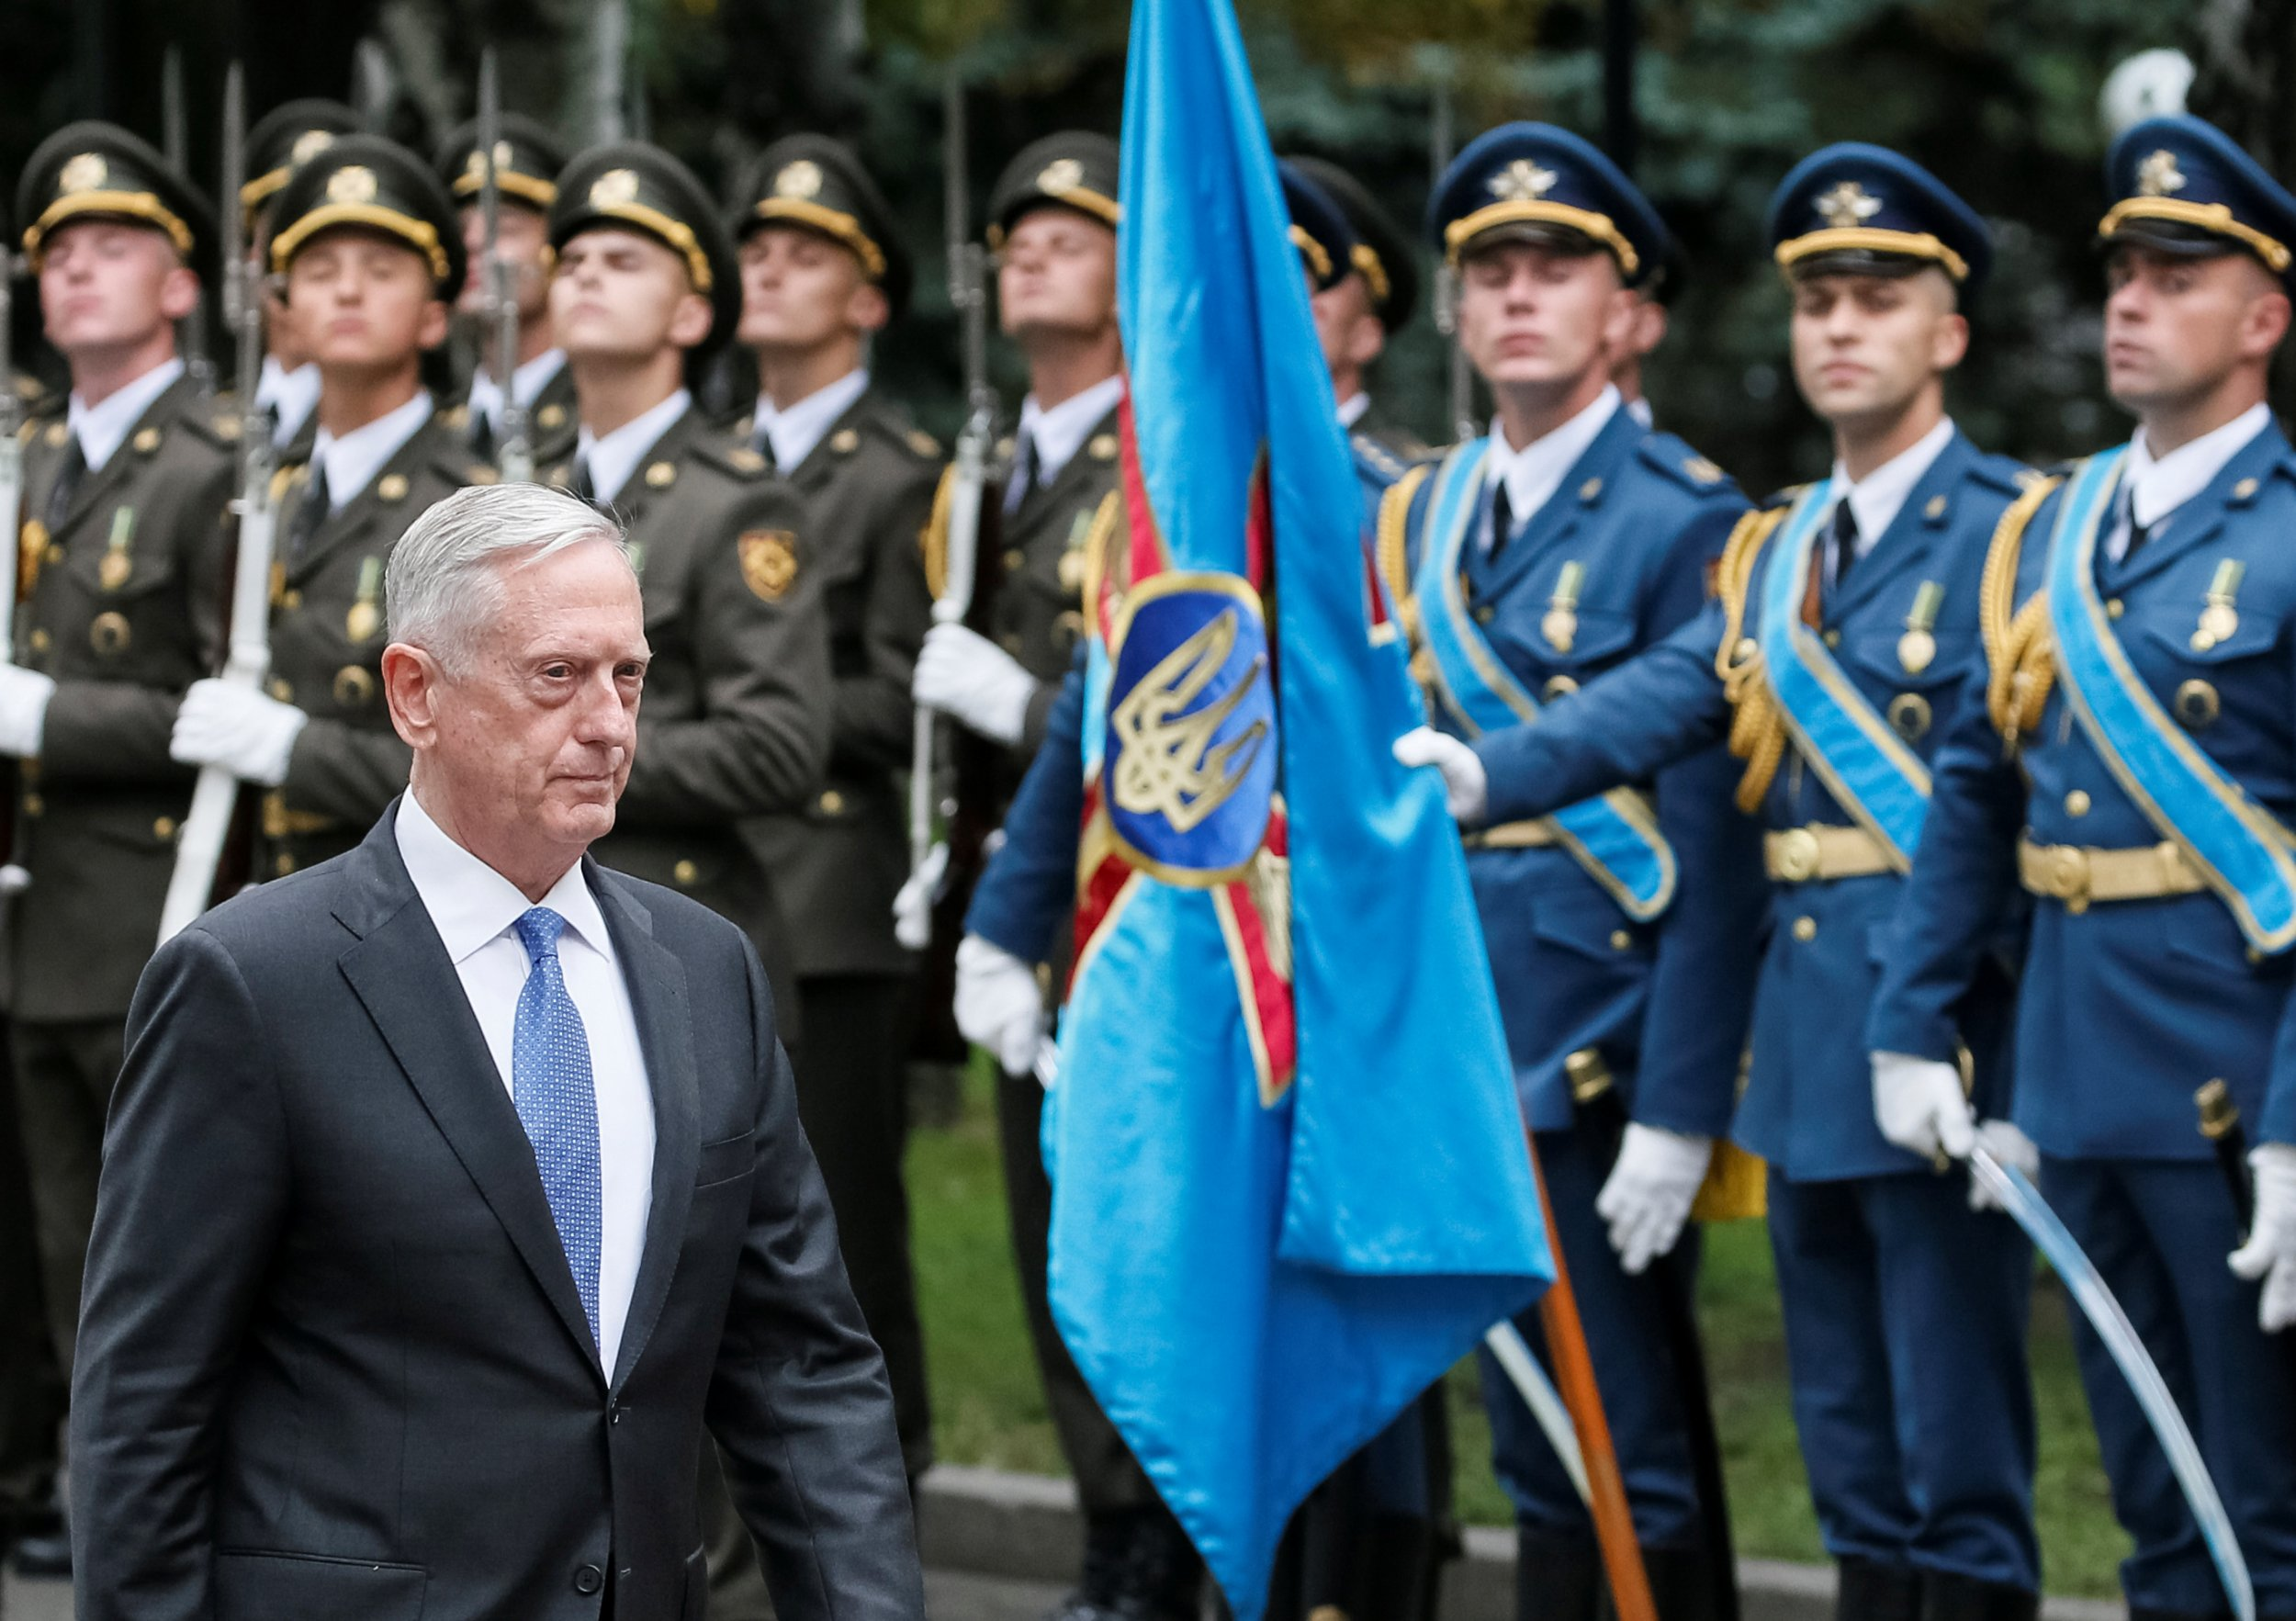 James Mattis Russia Wants to Redraw Map of Europe By Force